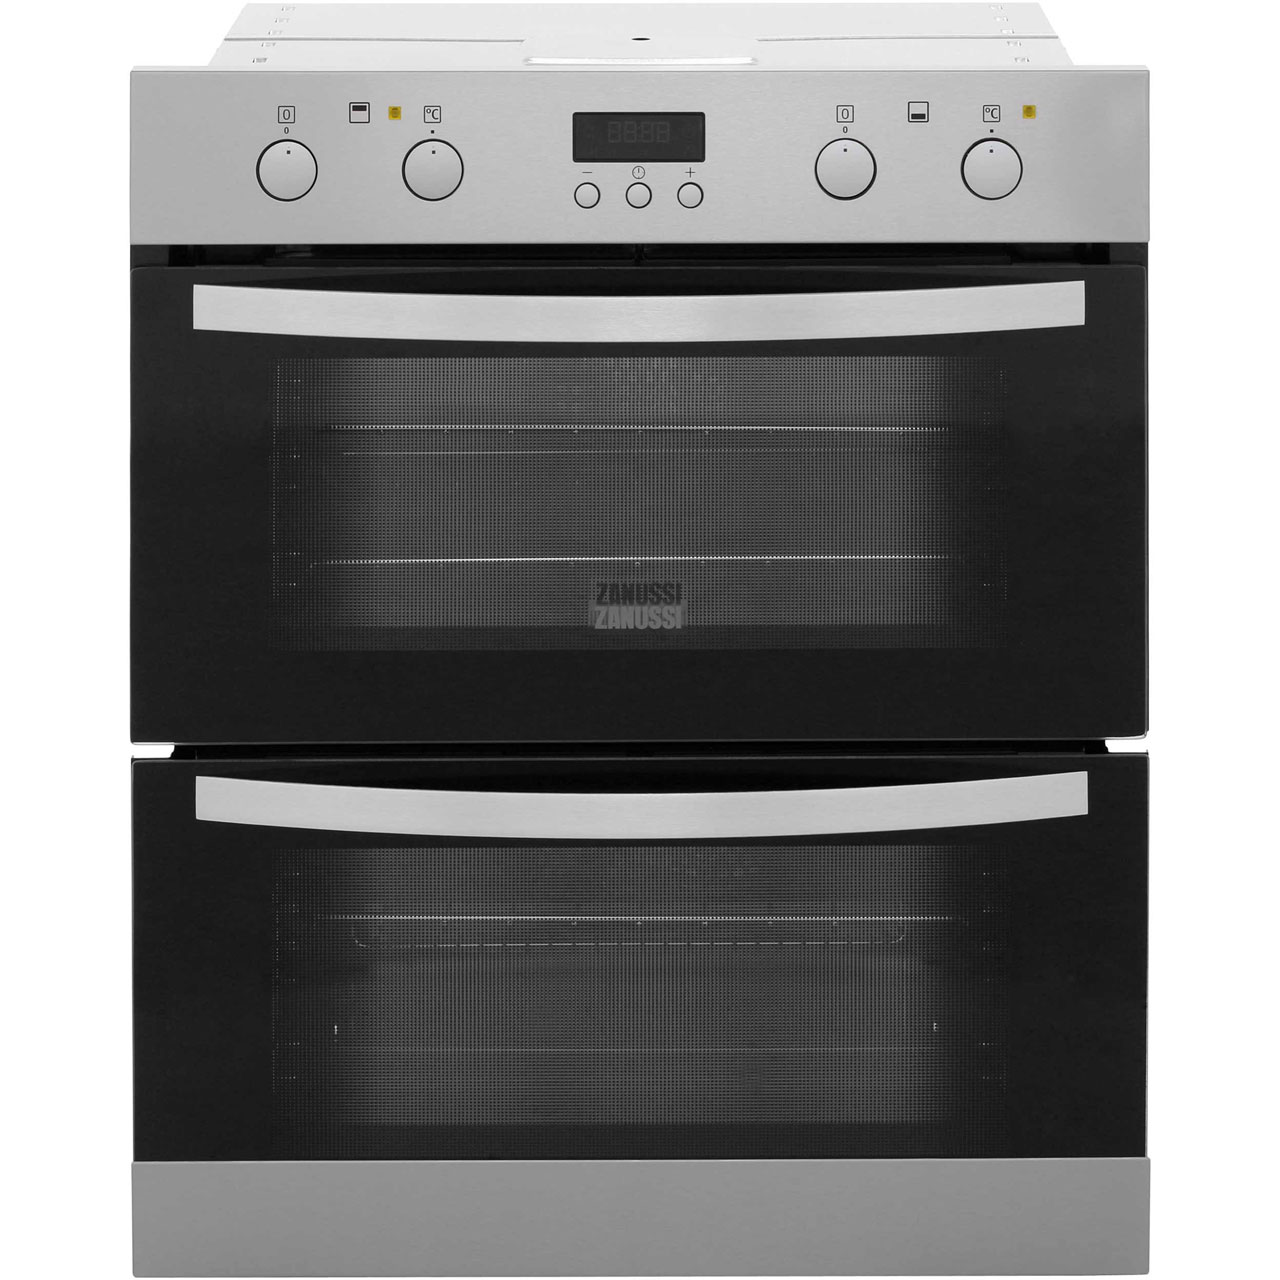 Zanussi ZOF35712XK Built Under Double Oven in Stainless Steel